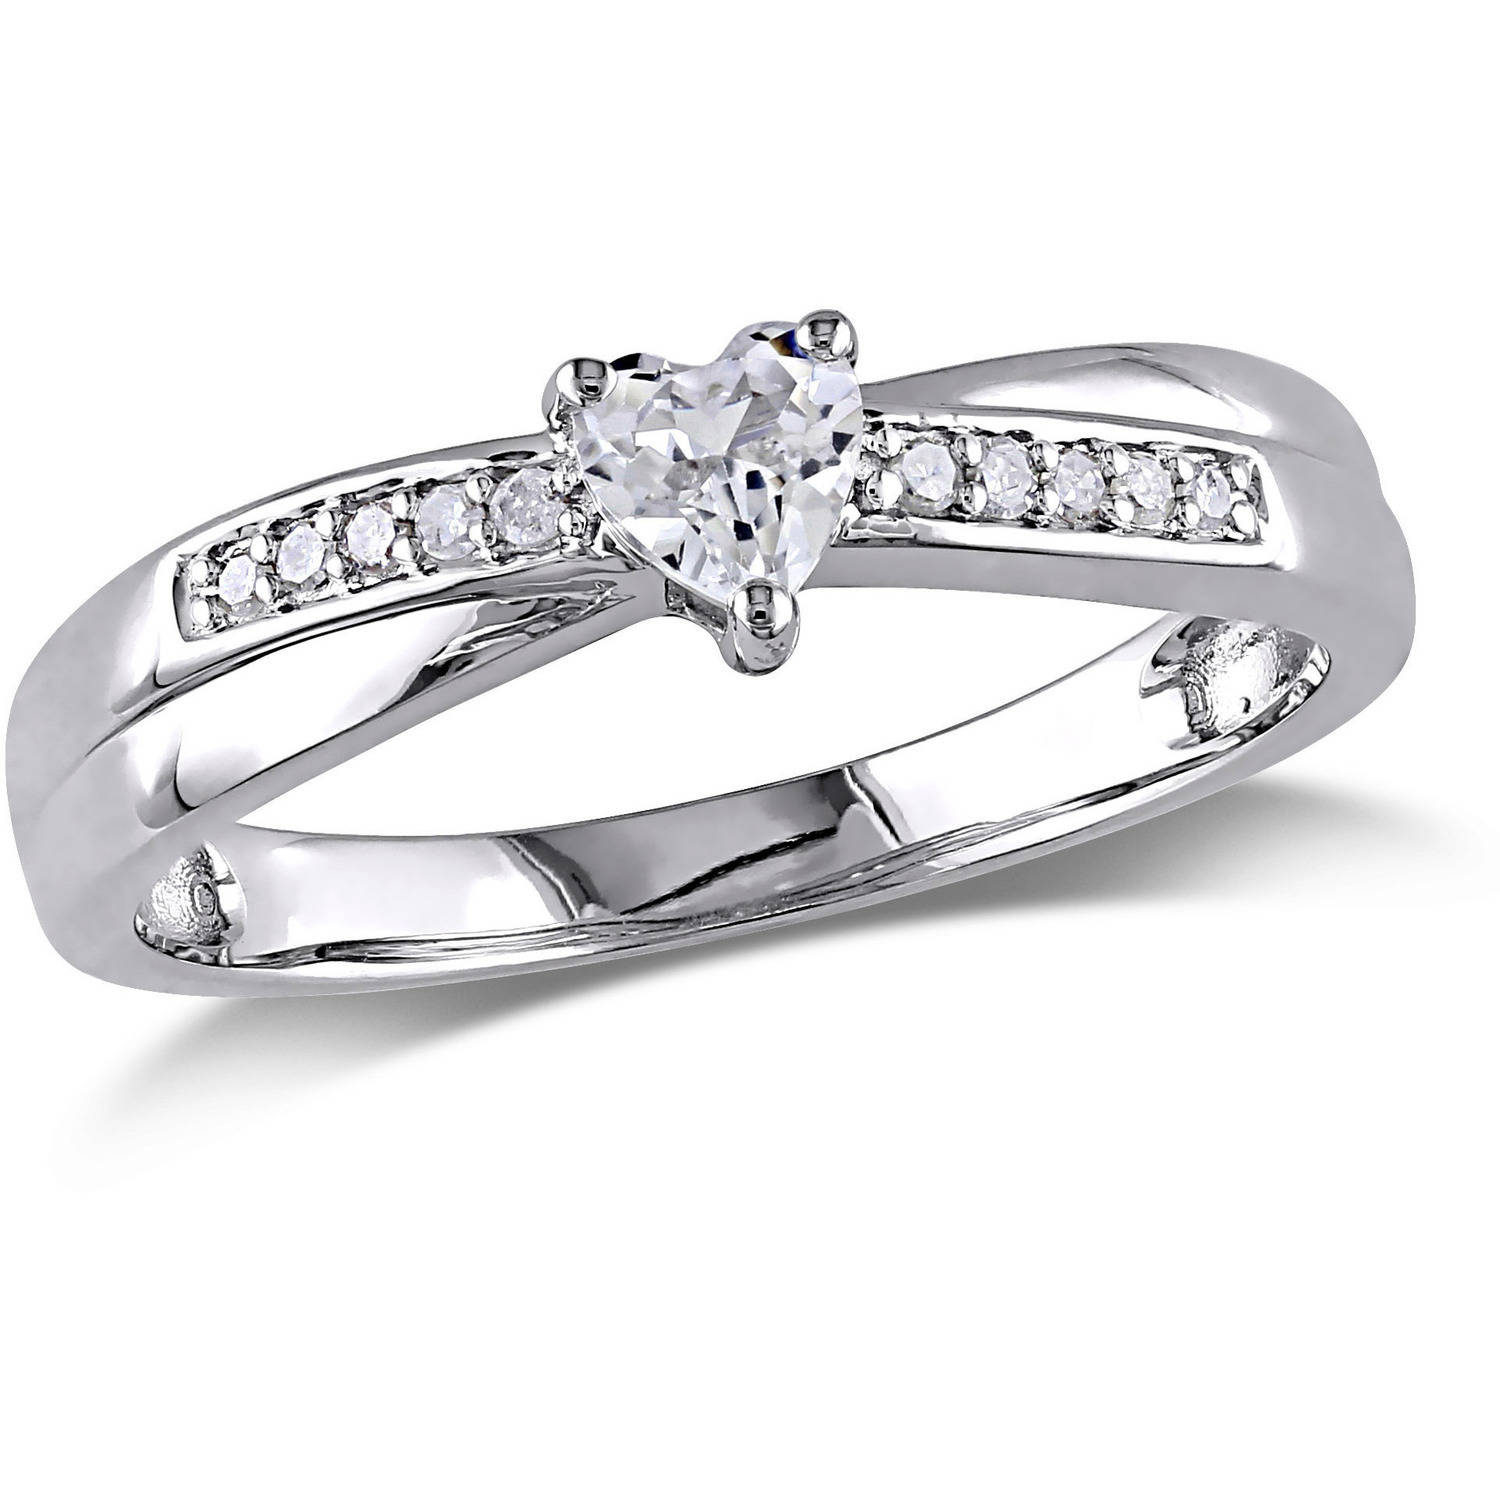 Miabella 14 Carat TGW Created White Sapphire and Diamond